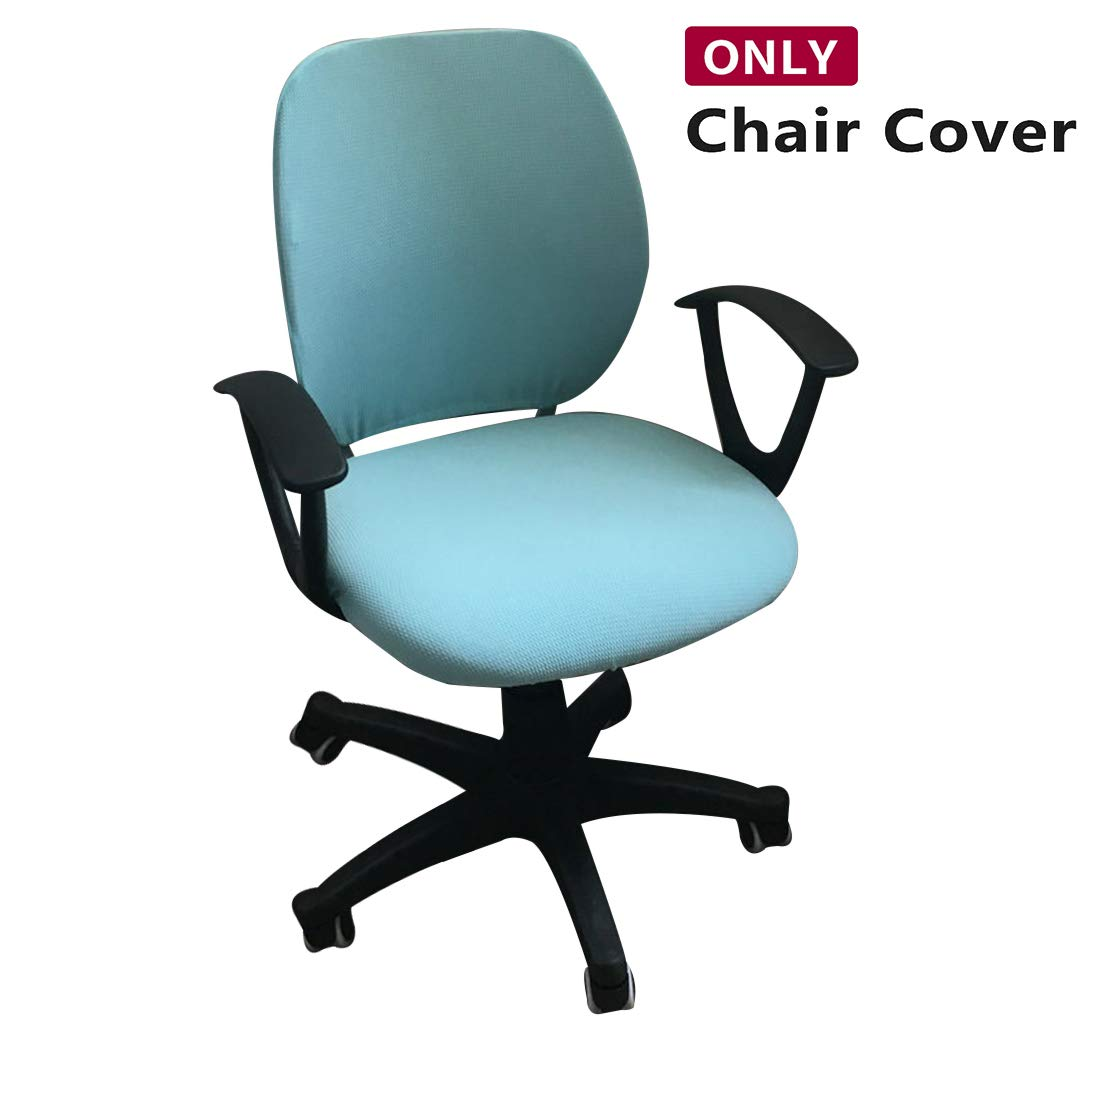 Jiyaru Rotating Armchair Slipcover Removable Stretch Computer Office Chair Cover Light Blue (Only Cover)